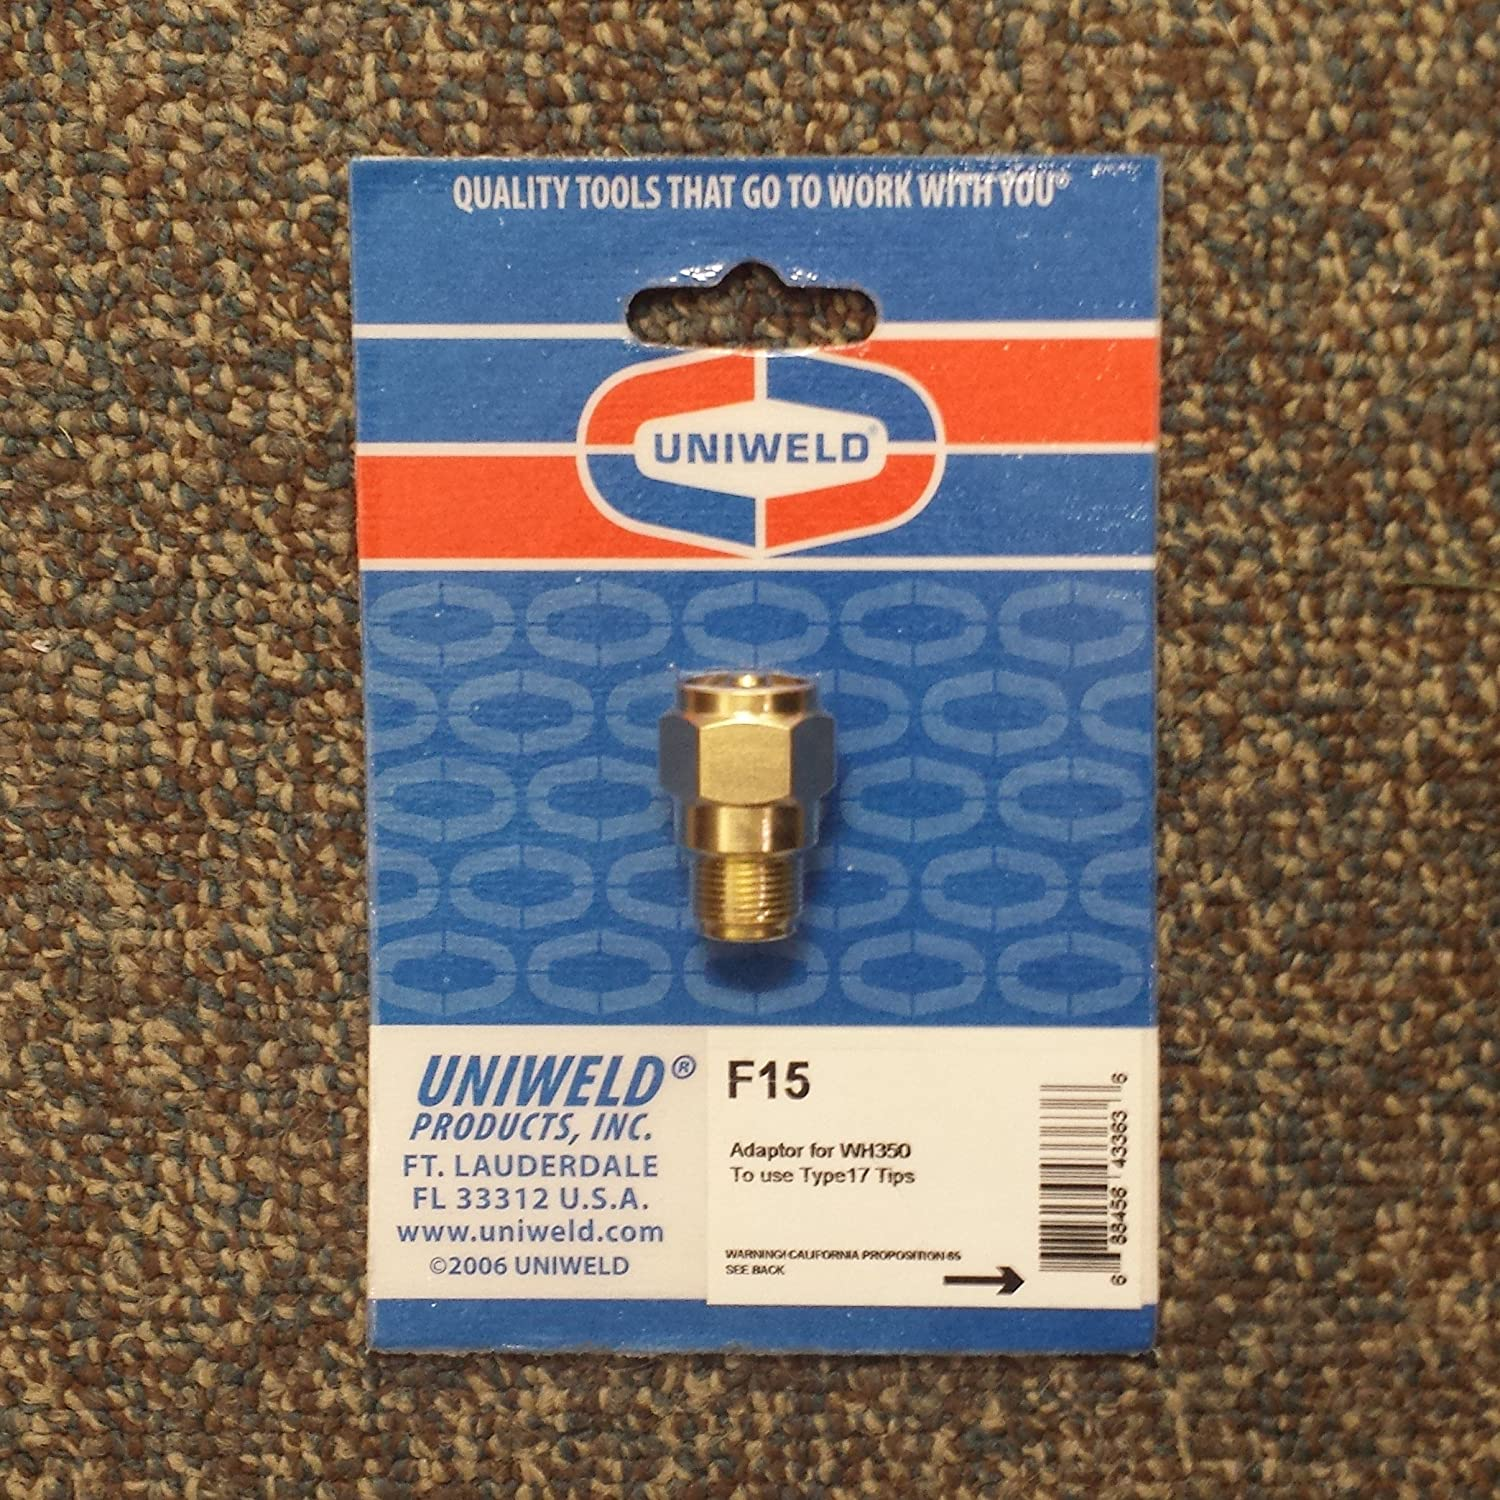 Uniweld ! Super beauty product restock quality top! F15 Adaptor List price for WH350 to use Type17 Brazing Tips Welding